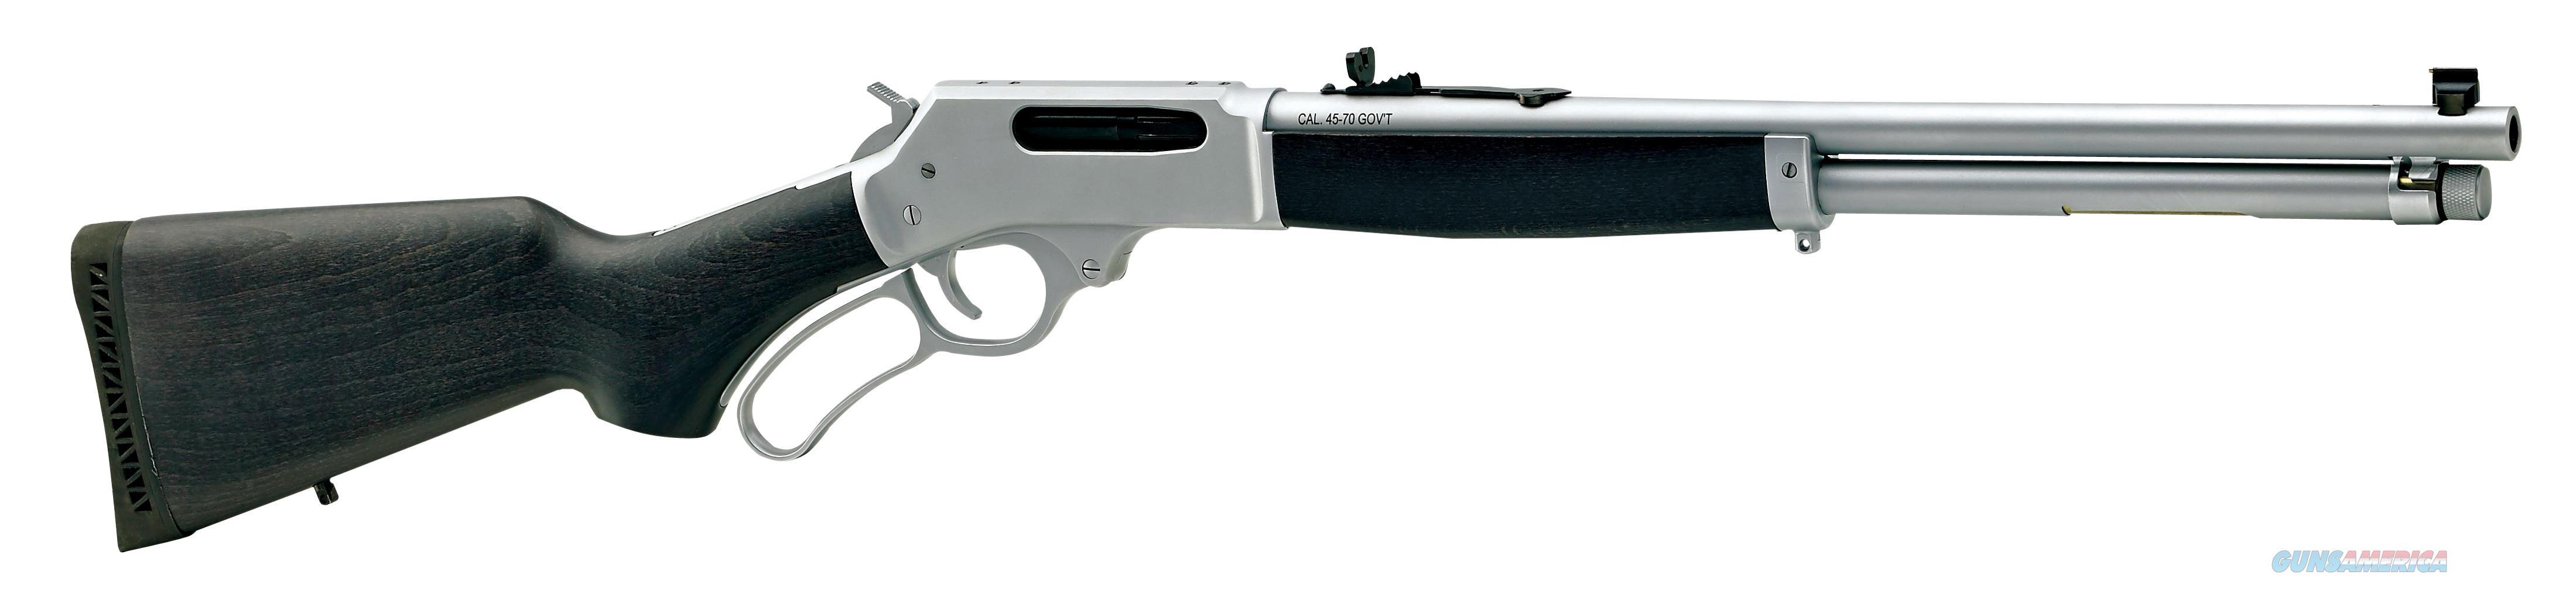 "Henry All-Weather Lever Action .45-70 Govt 18.43"" 4 Rds H010AW  Guns > Rifles > Henry Rifle Company"